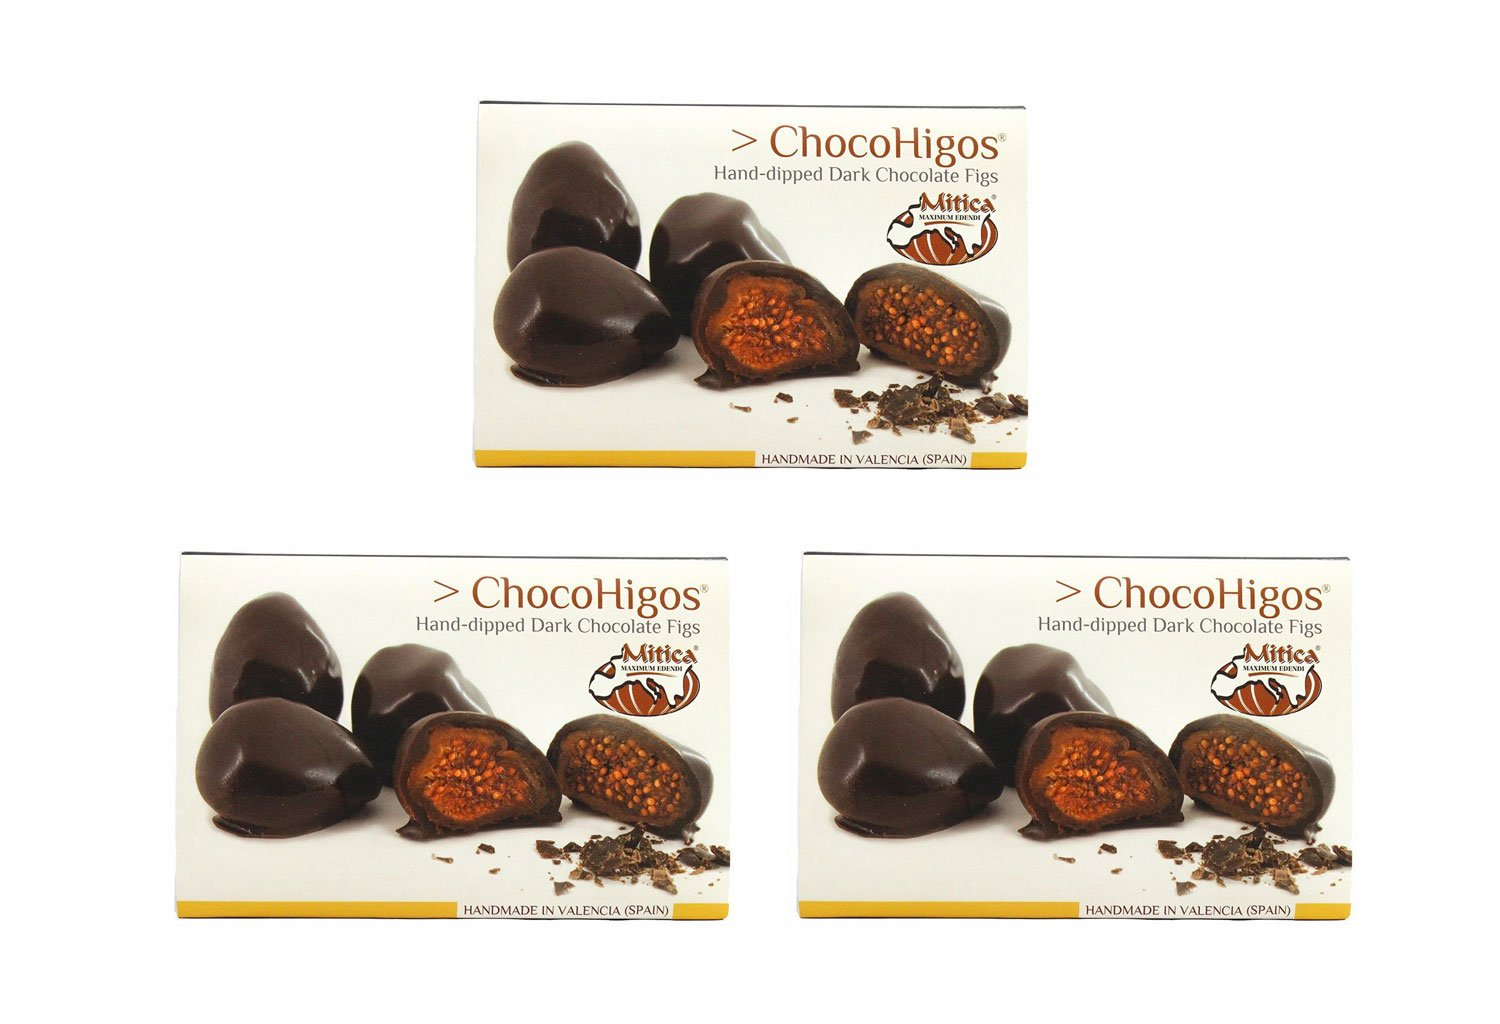 ChocoHigos - Hand-dipped Dark Chocolate Figs - 1 container, 4.9 oz (Pack of 3)